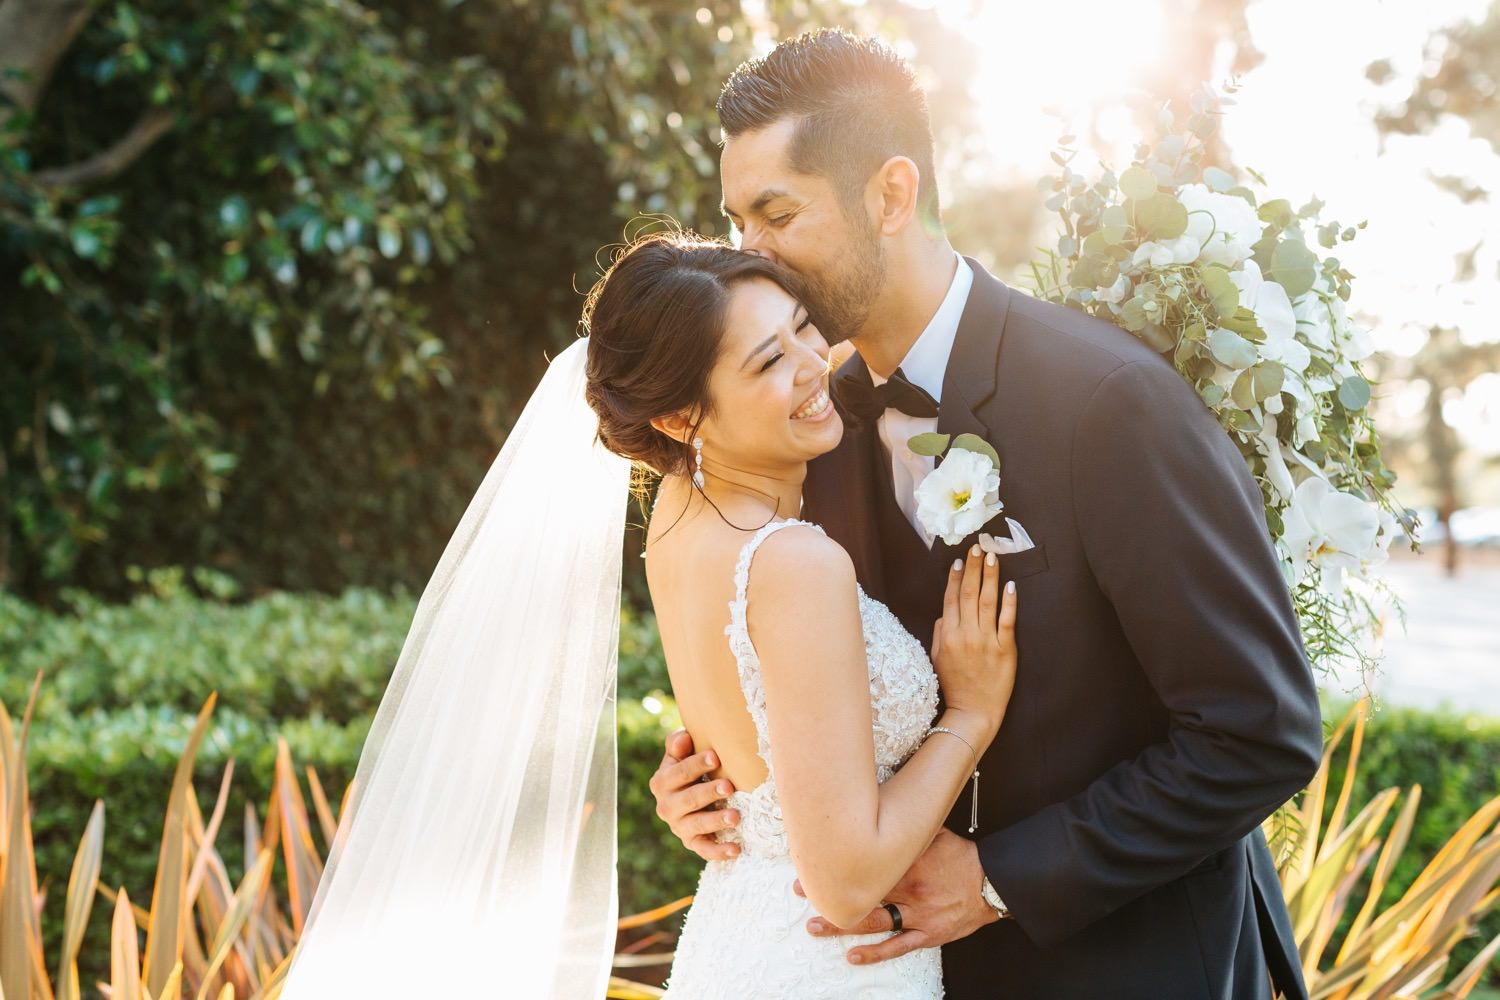 Romantic and dreamy bride and groom photos - LA Wedding - https://brittneyhannonphotography.com